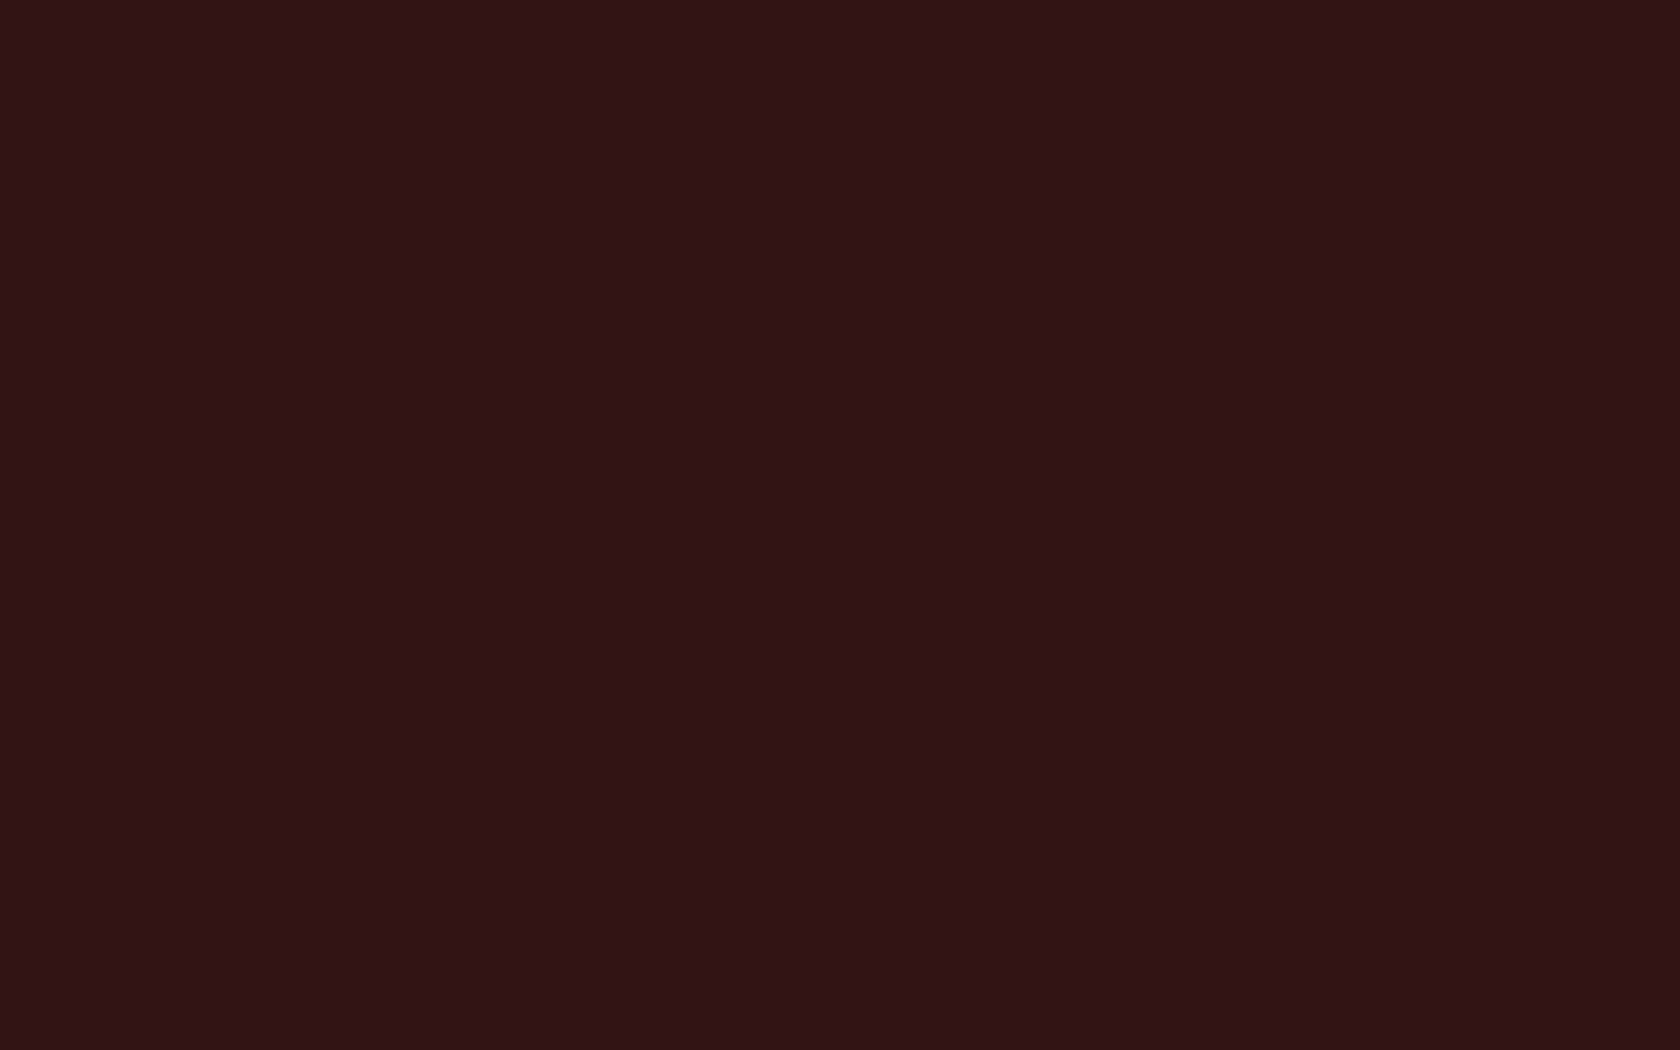 1680x1050 Seal Brown Solid Color Background